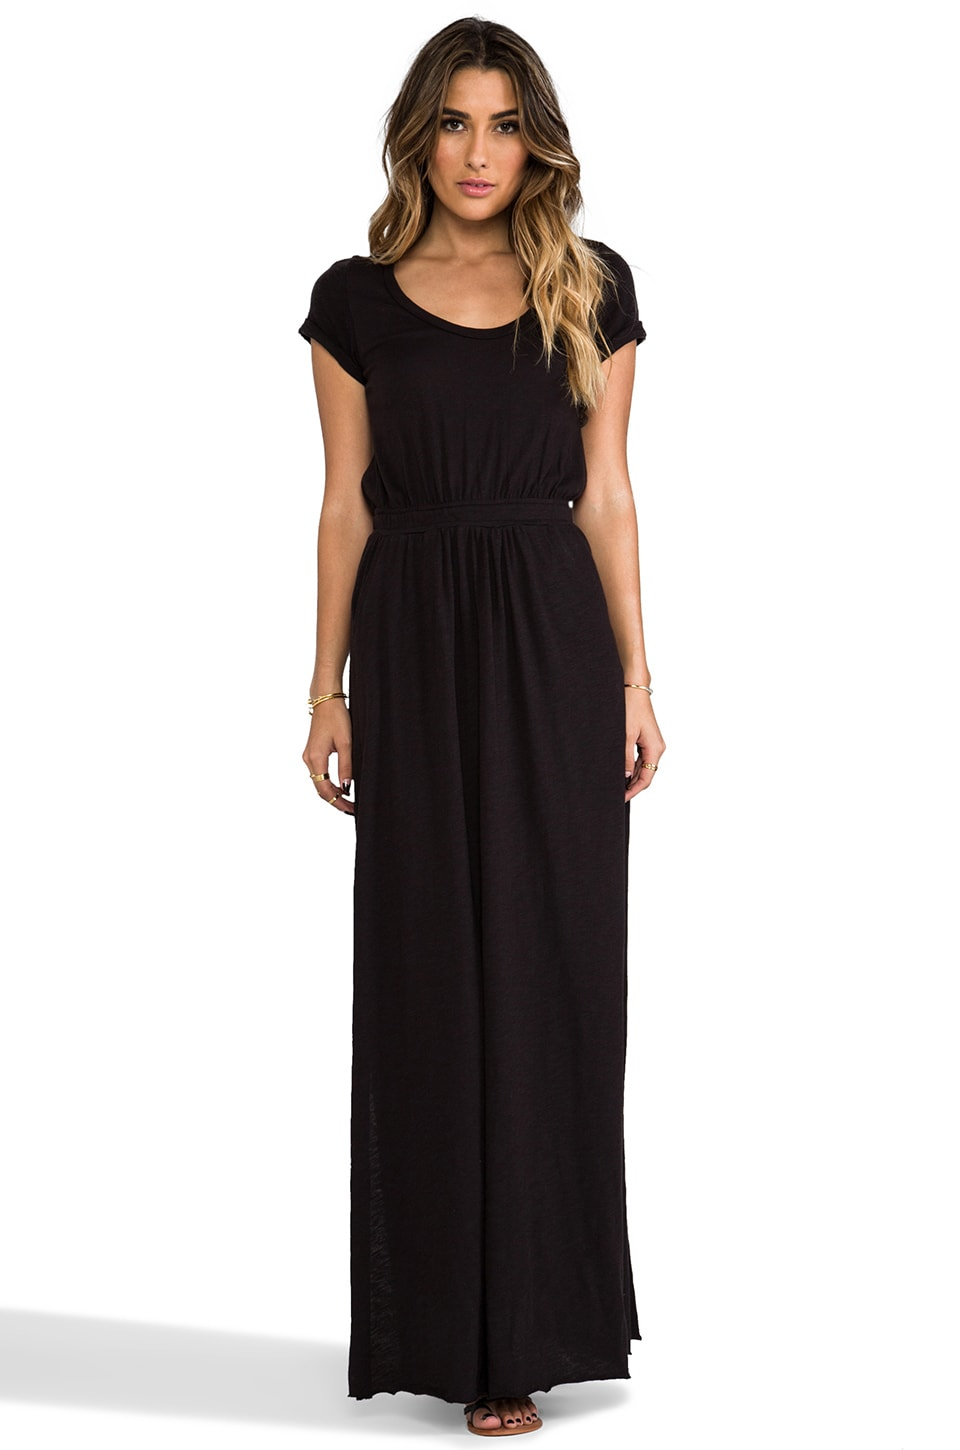 Free People Andrina's Dress in Black